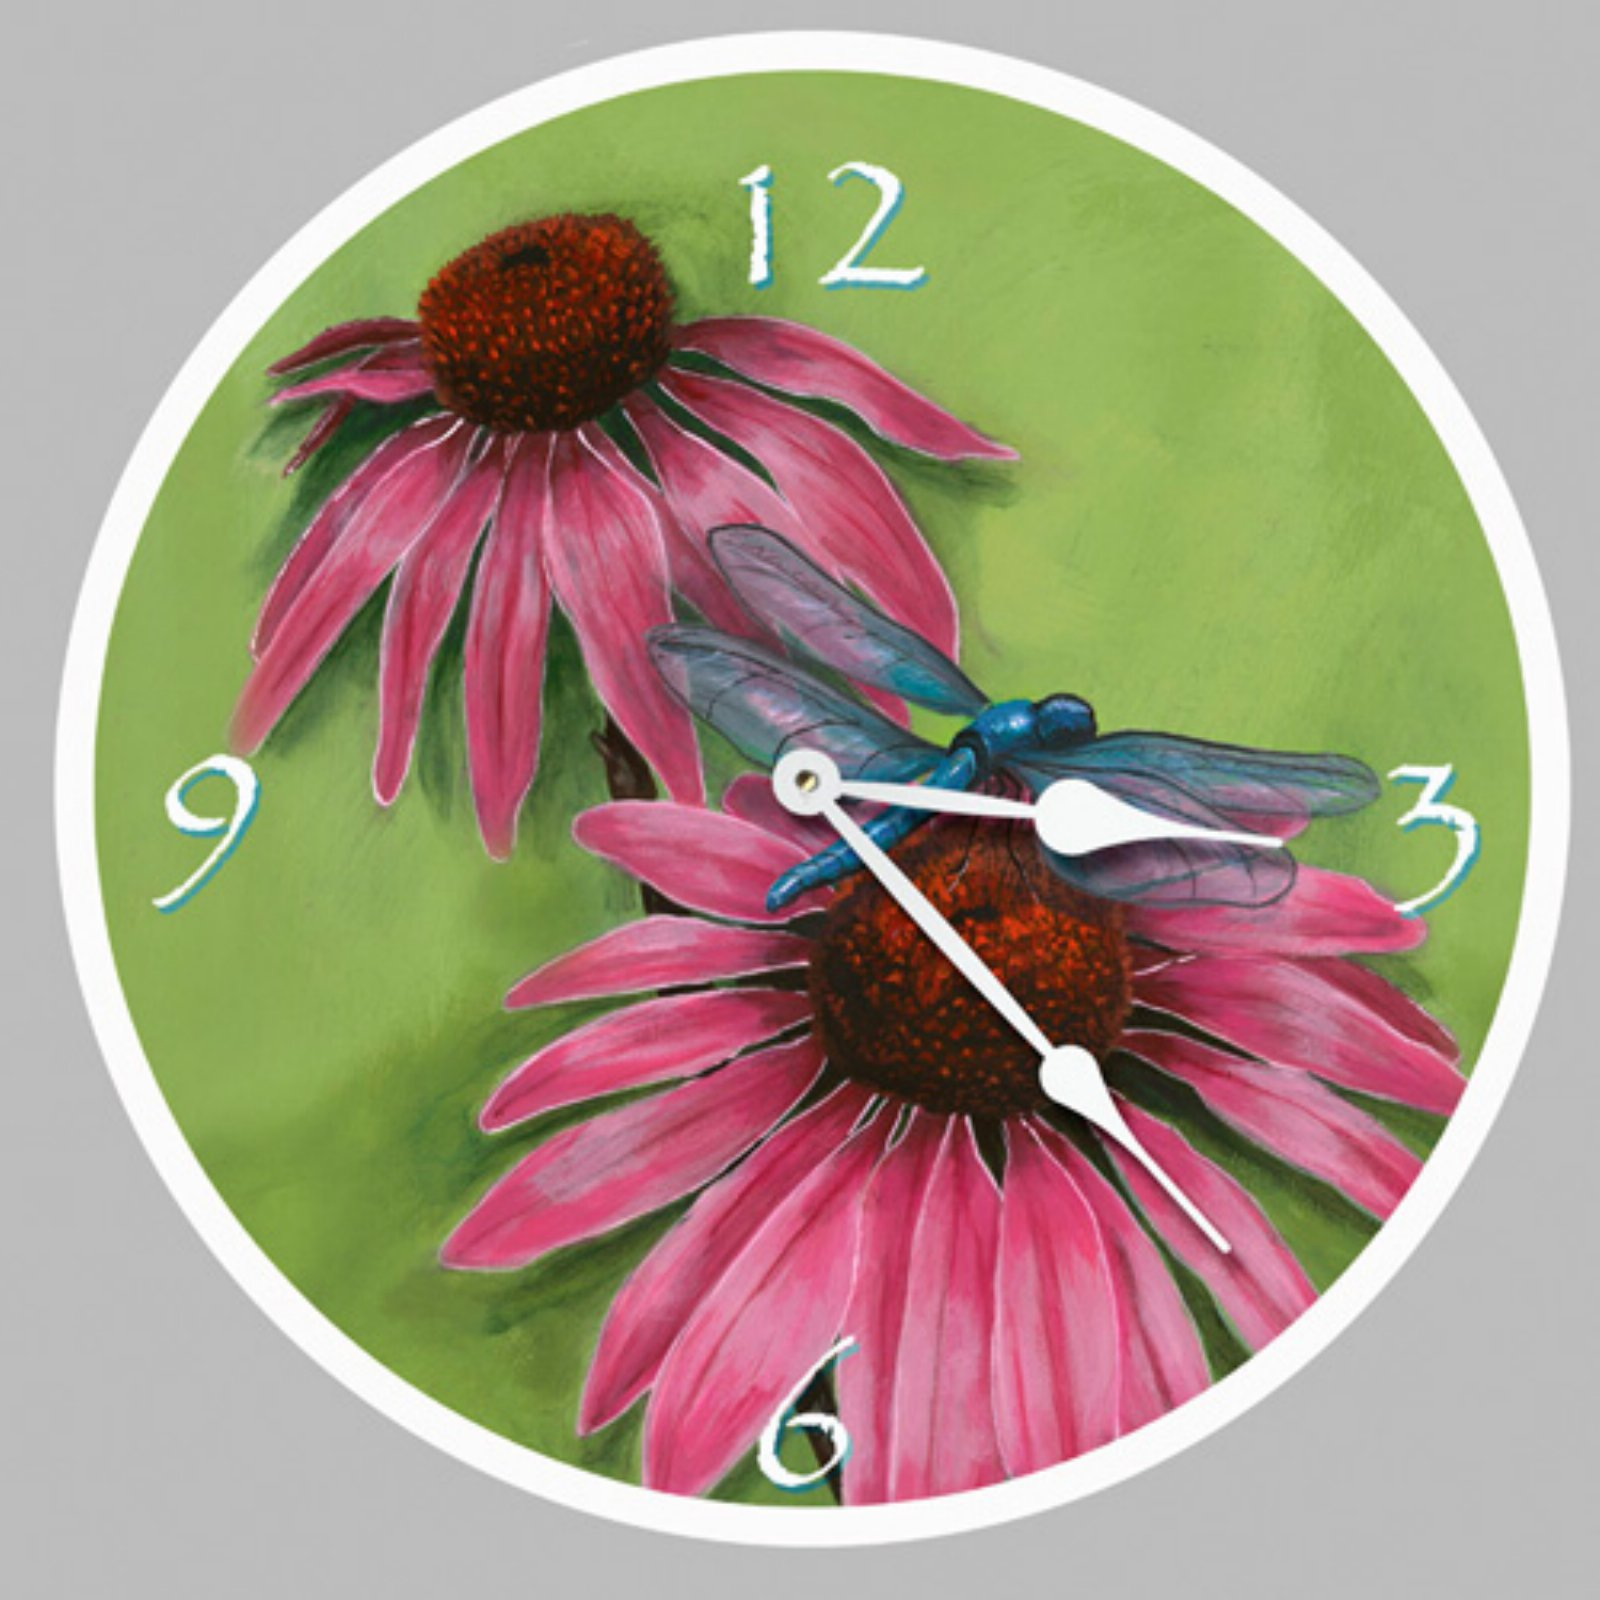 Lexington Studios Dragonfly Wall Clock